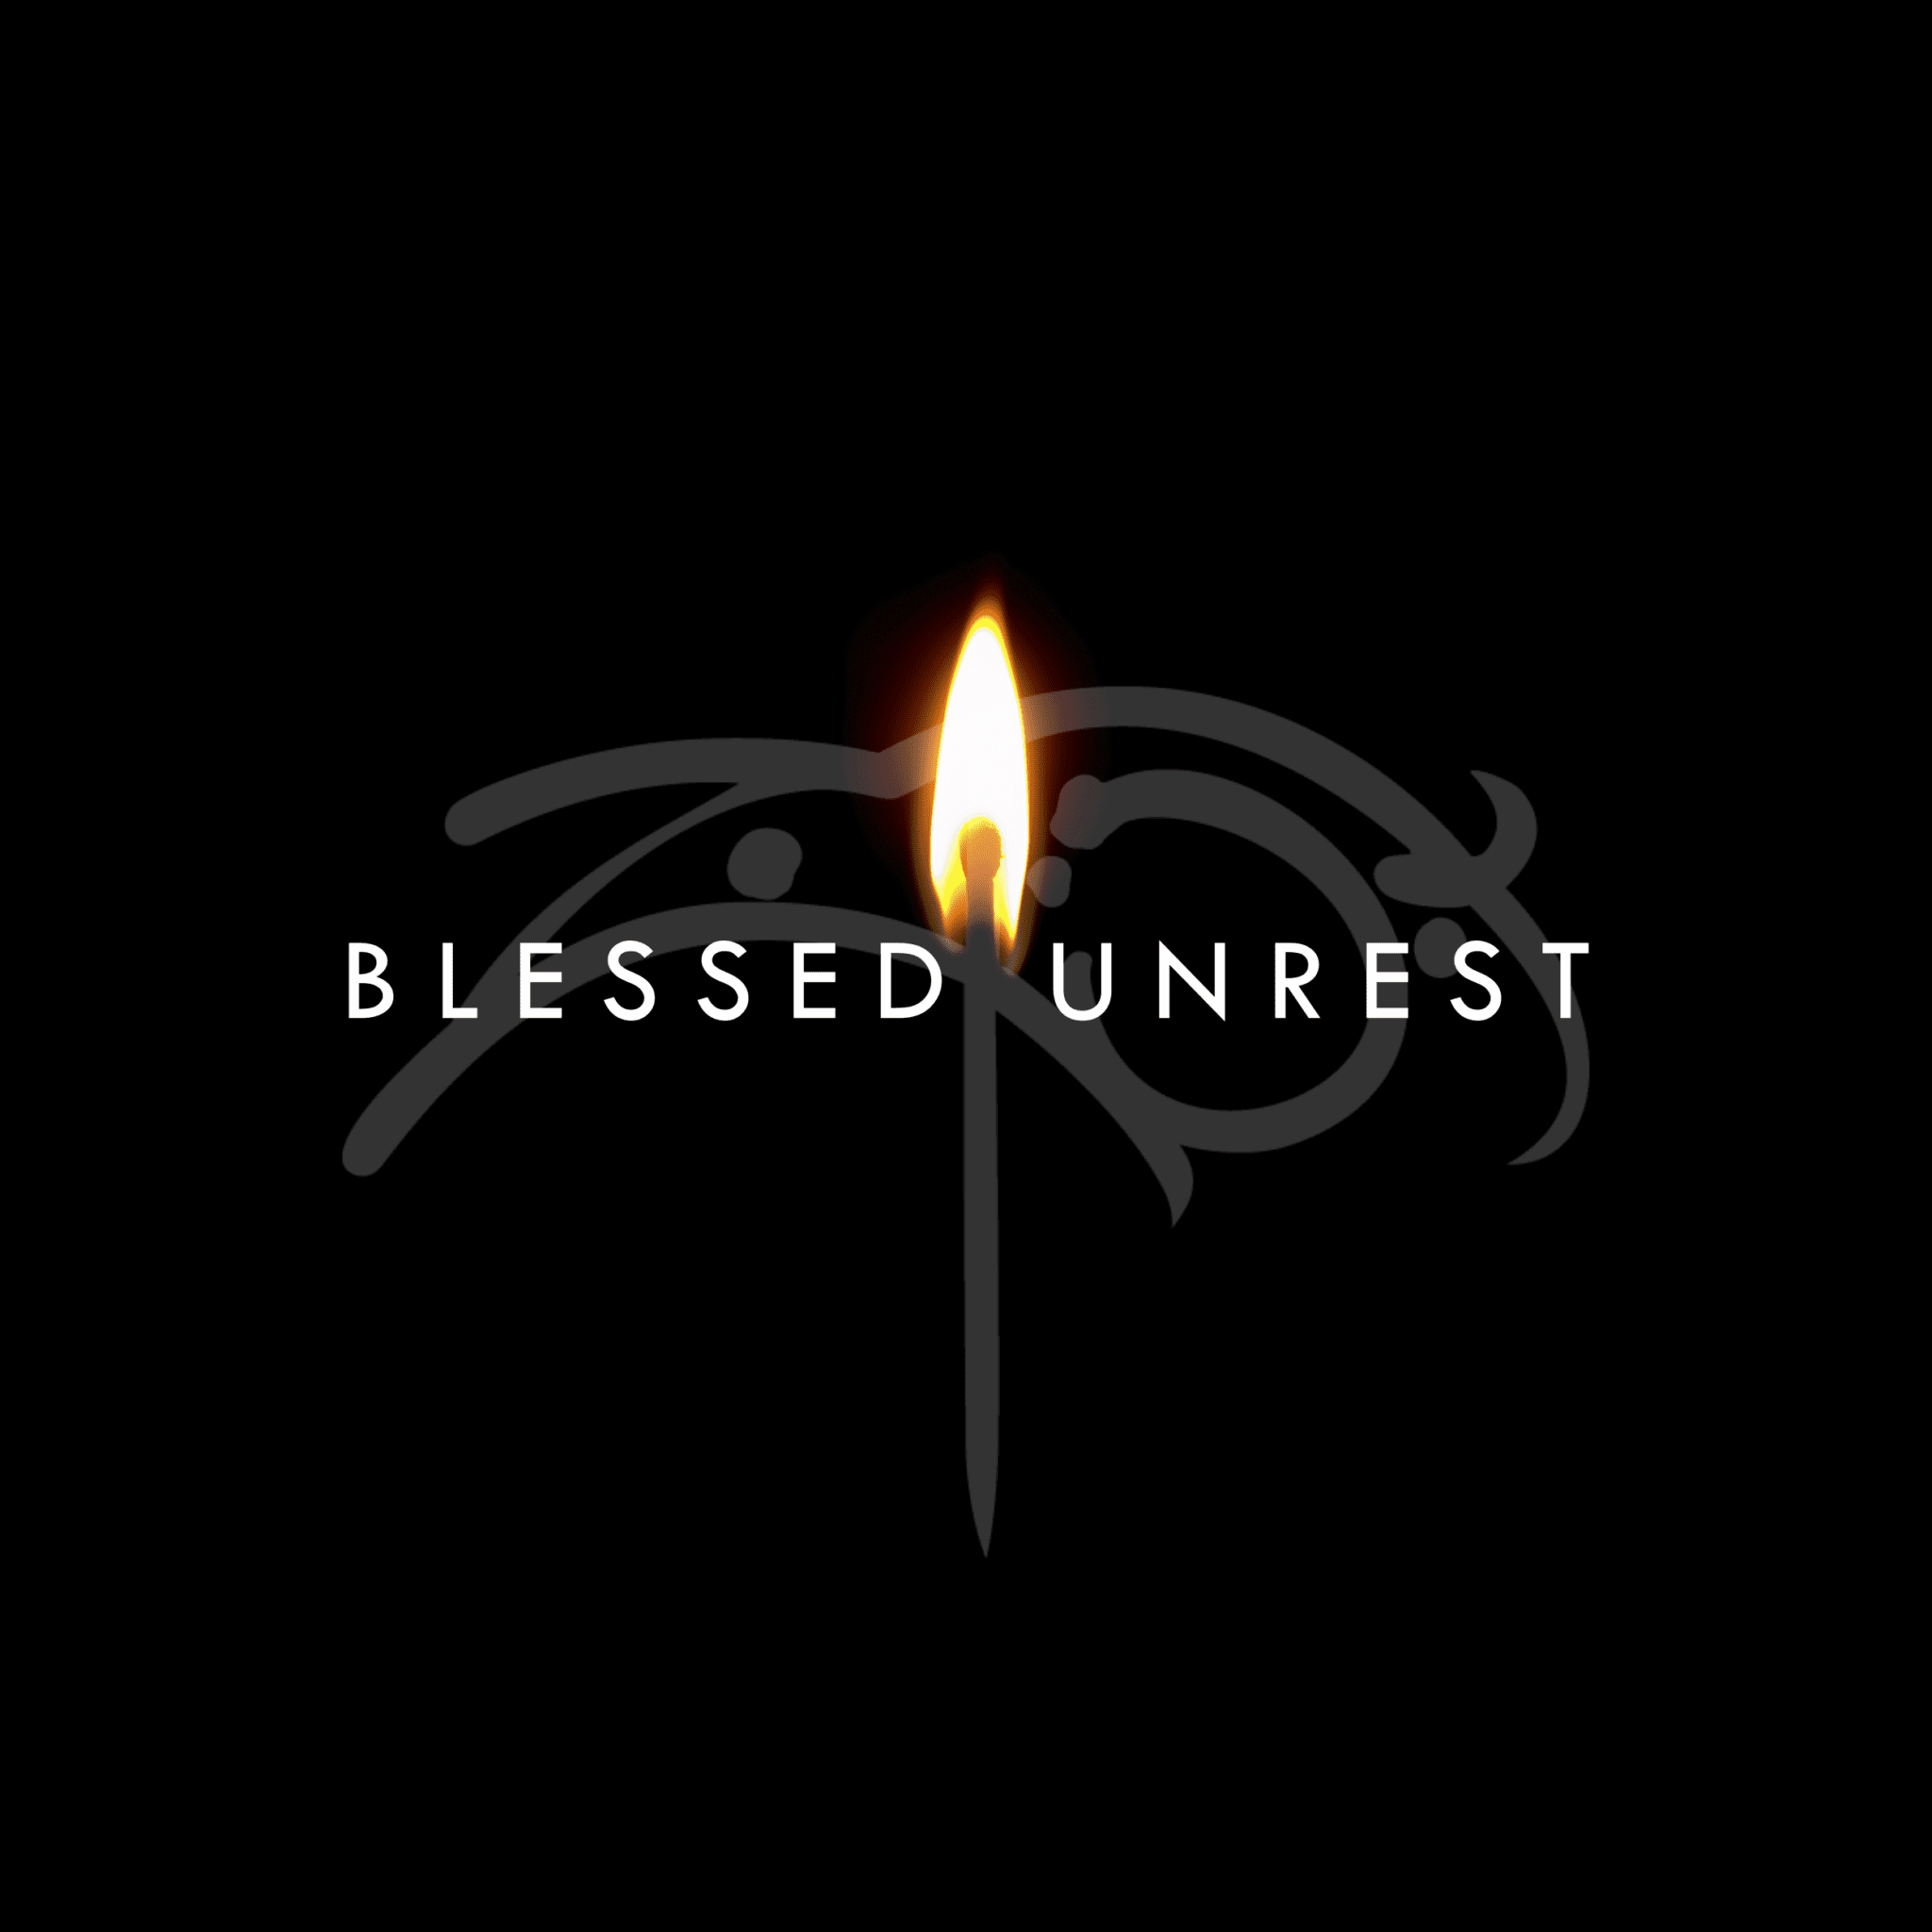 Blessed Unrest - Cover Art - 3840 x 3840 pixels